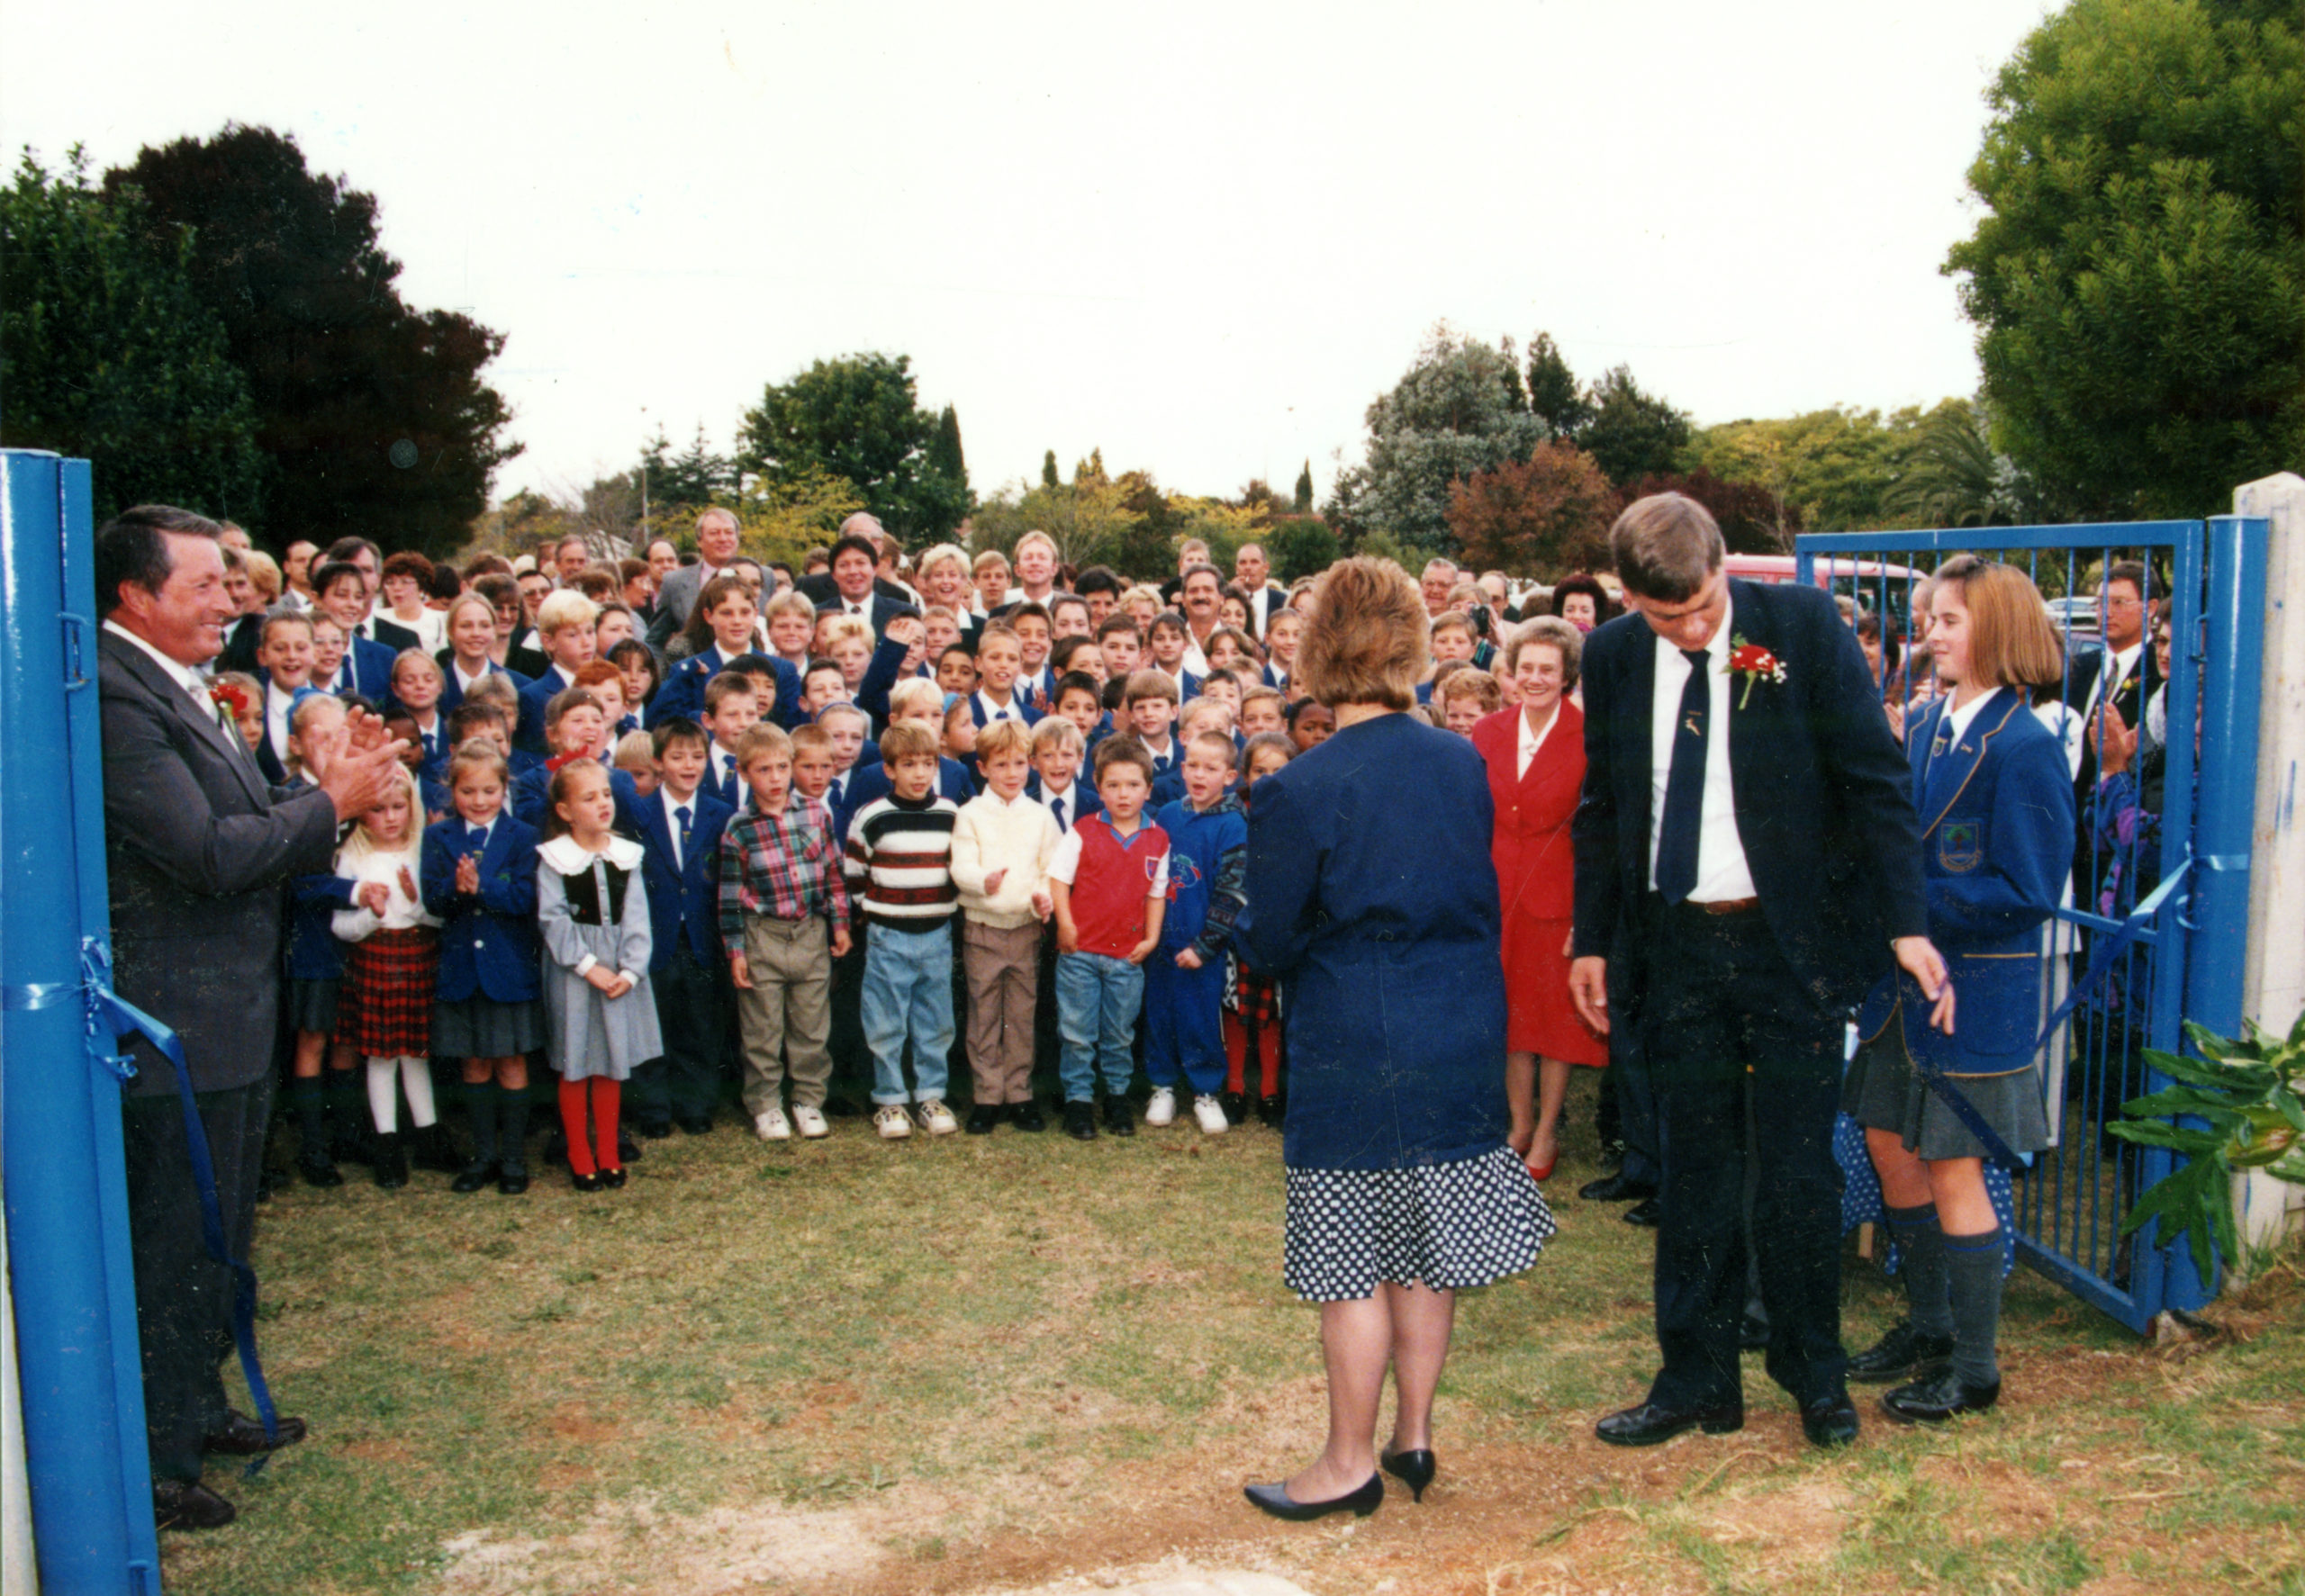 Students and Staff of Shanghai-la academy soon after the school opened.